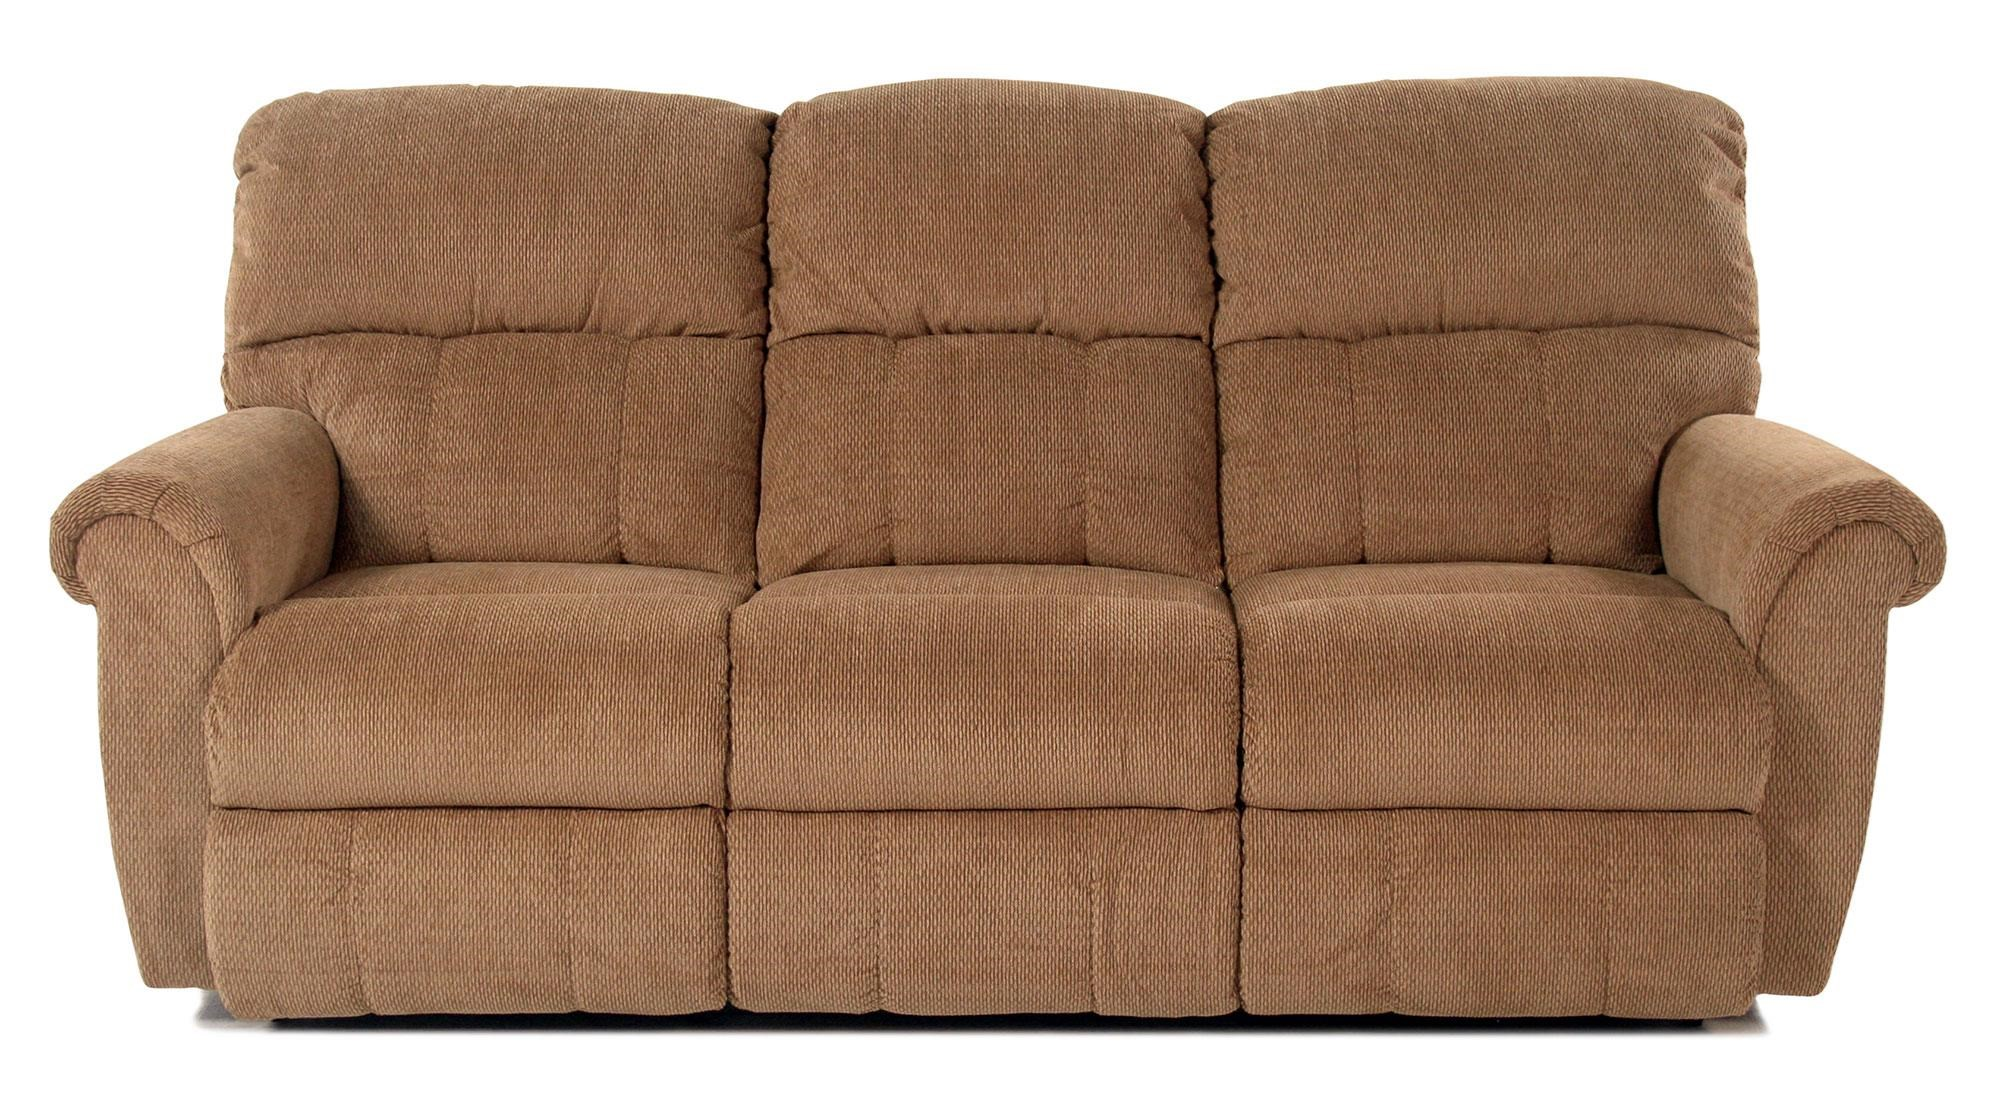 La-Z-Boy Zachary Power La-Z-Time® Full Reclining Sofa - Item Number: 44P701-C108173